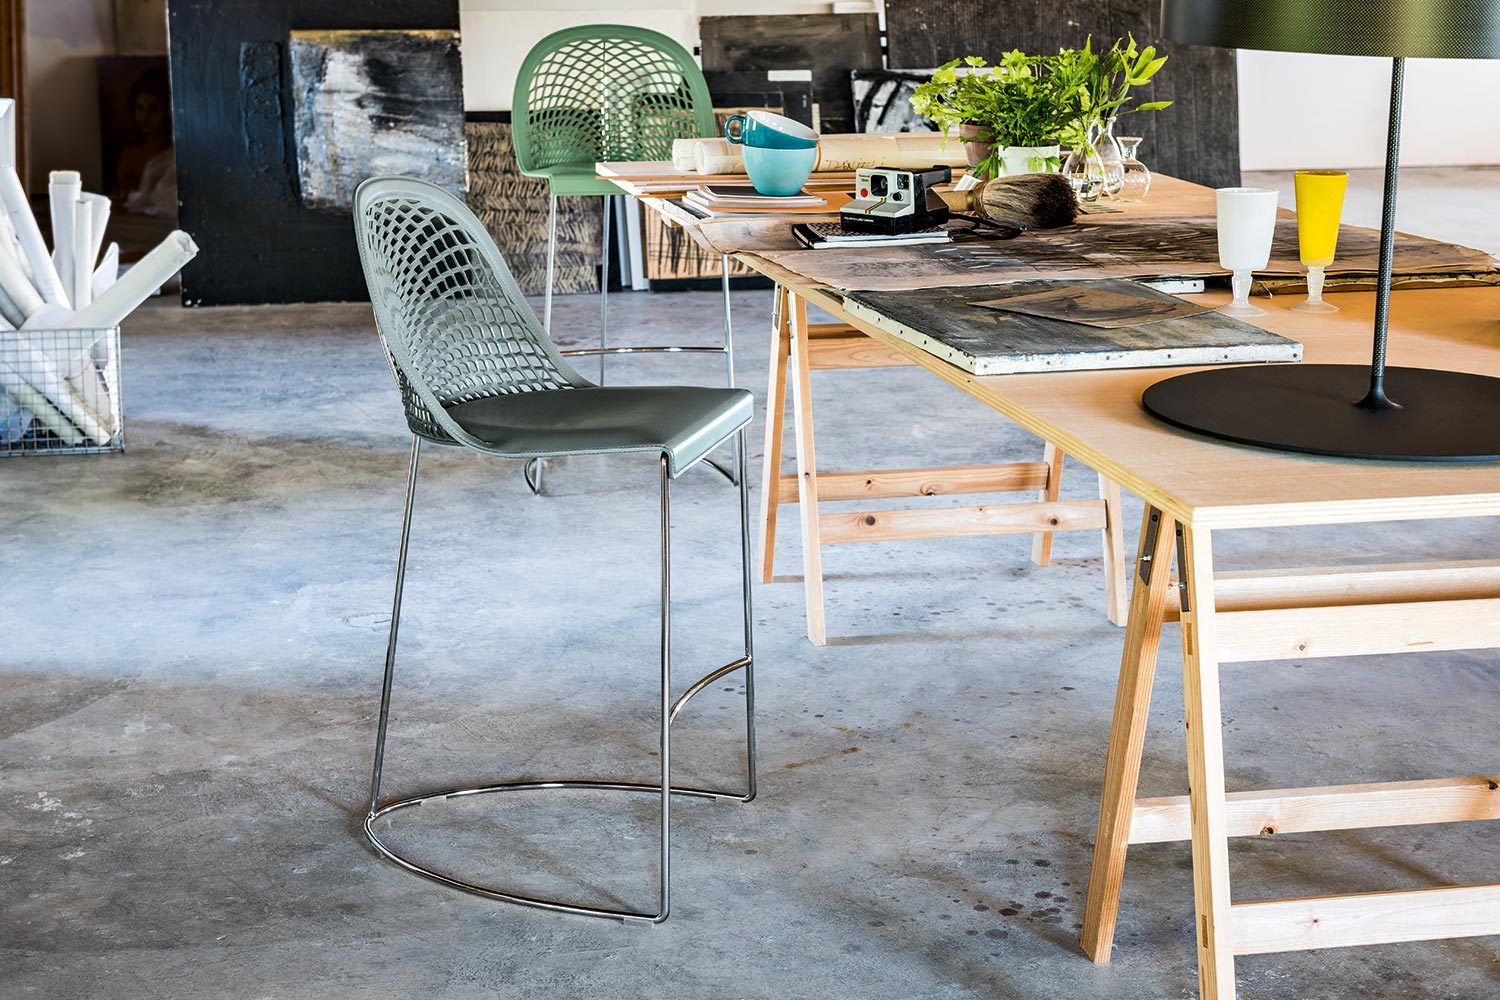 New Products- Get the Best for your Space!